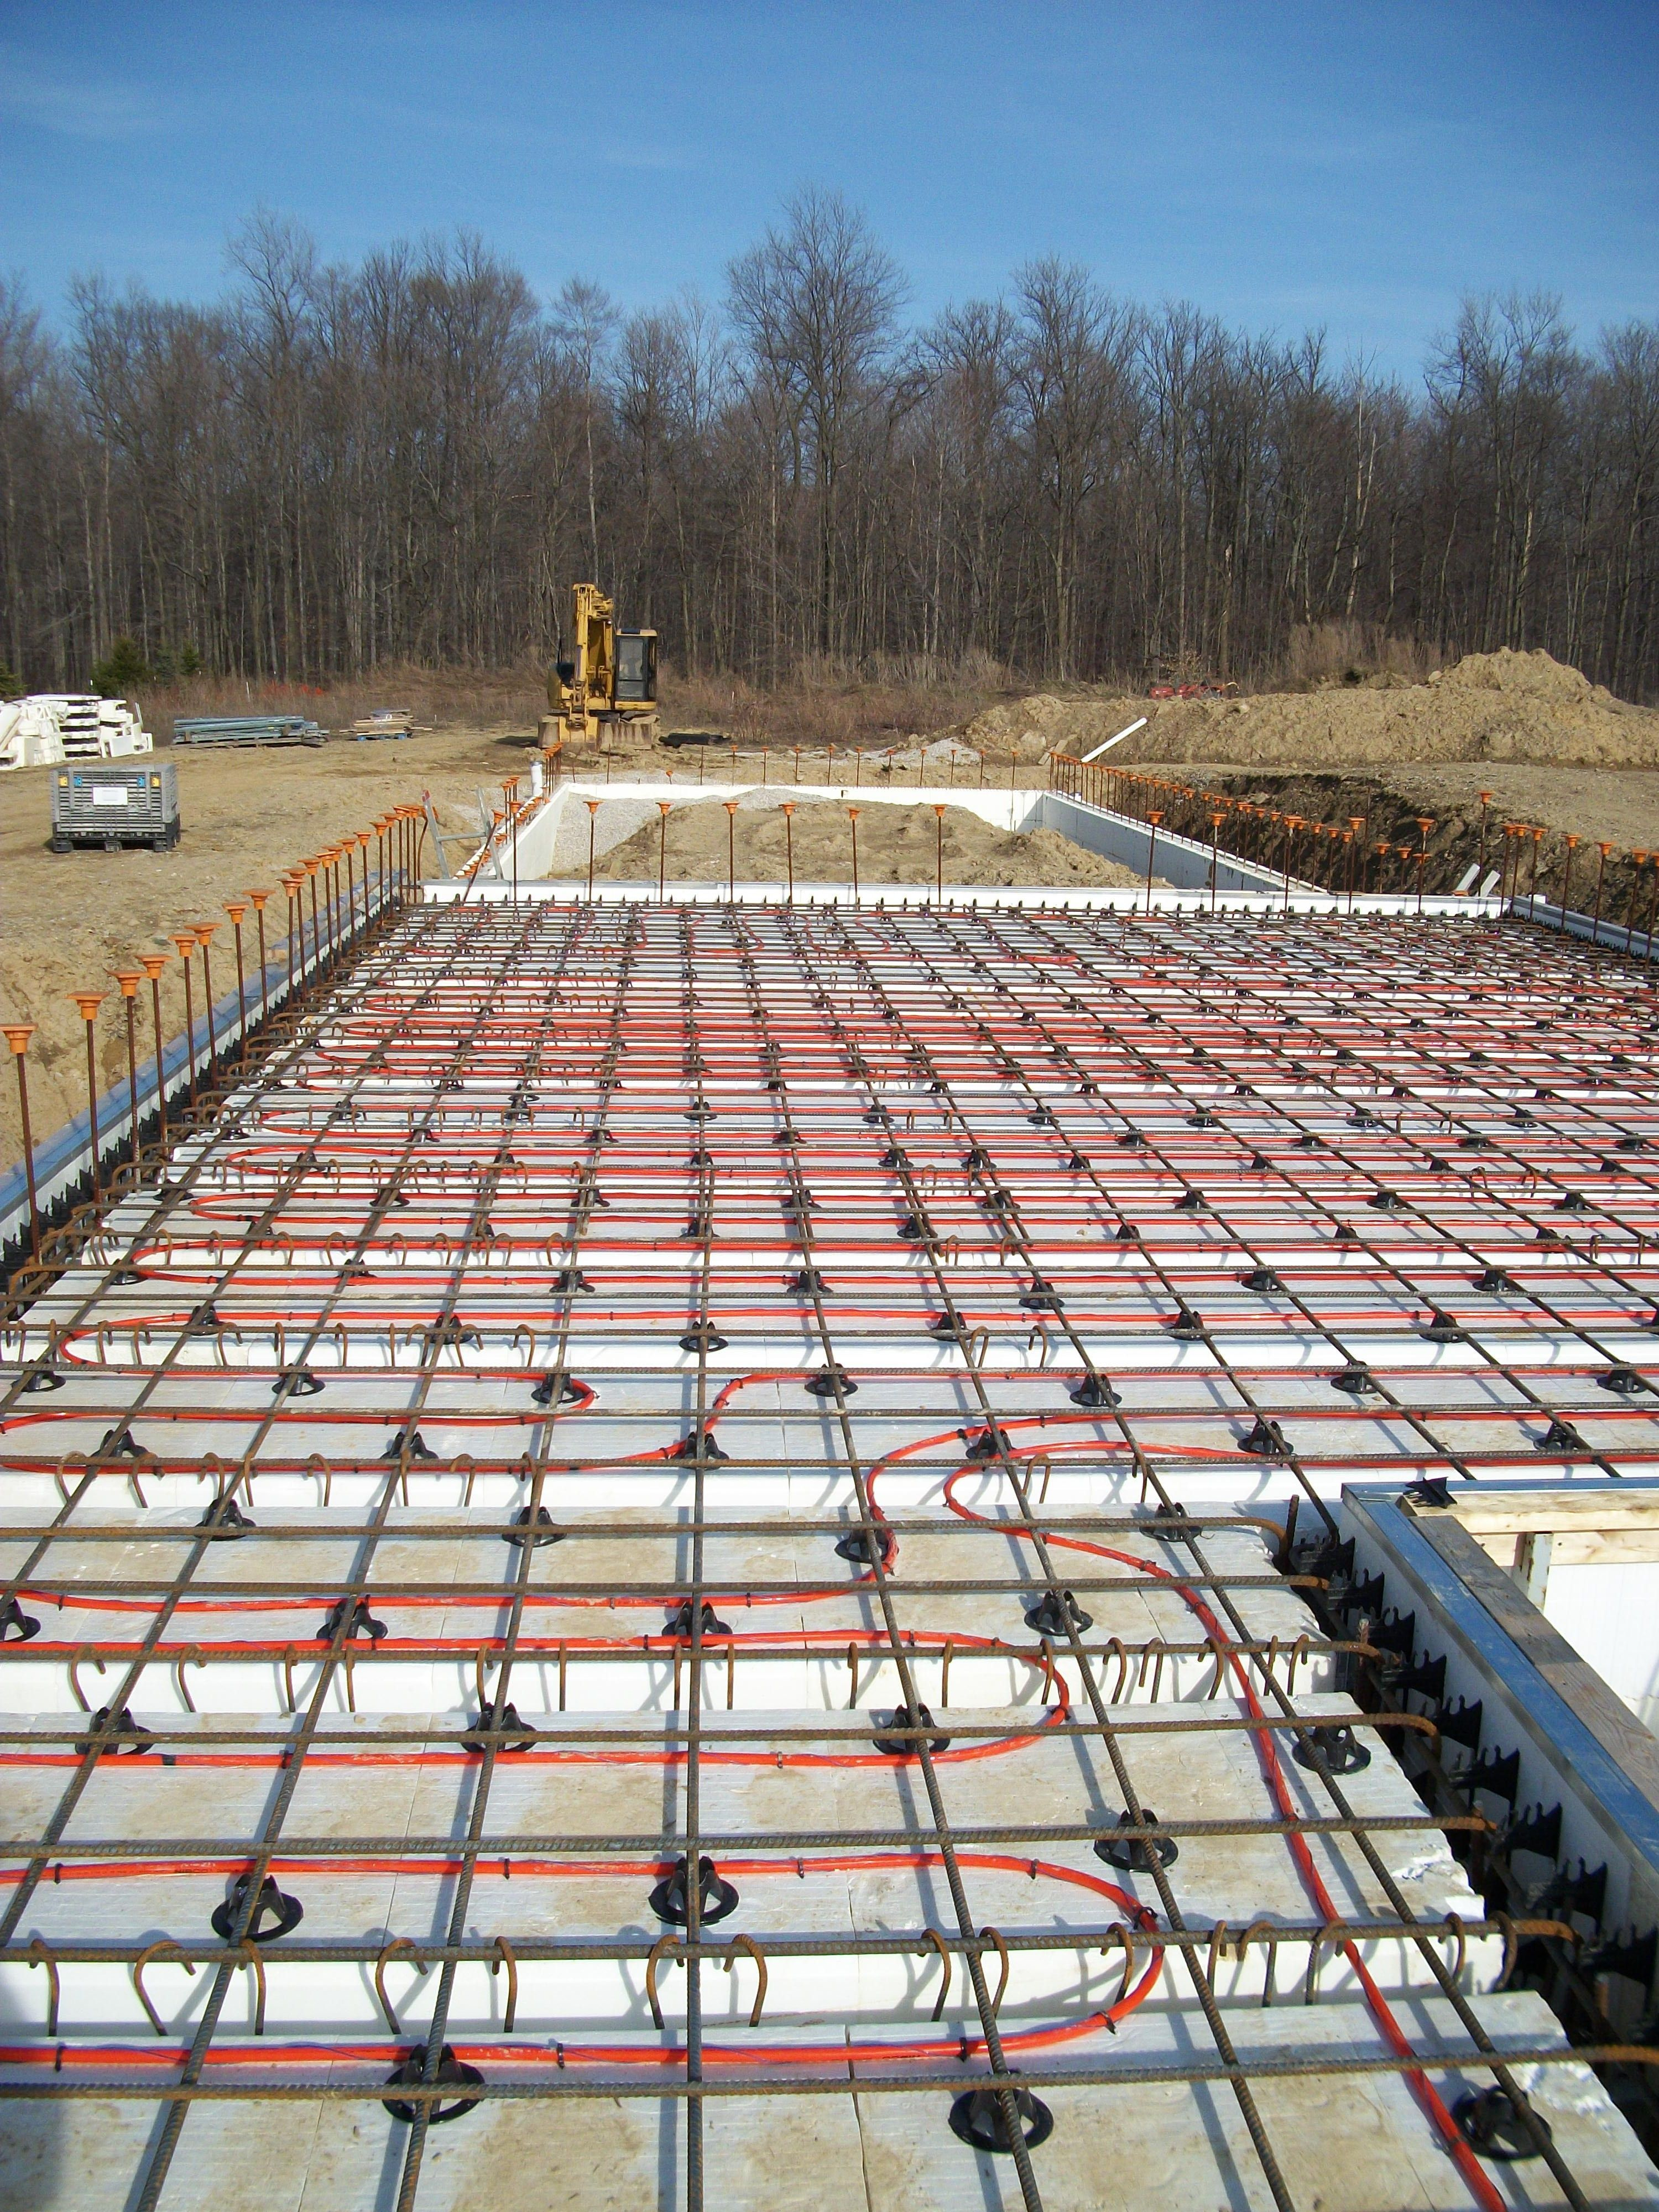 Insulated Concrete Forms With Radiant Floor Heating System Farmhouse Modern Urban Hva Floor Heating Systems Insulated Concrete Forms Radiant Floor Heating